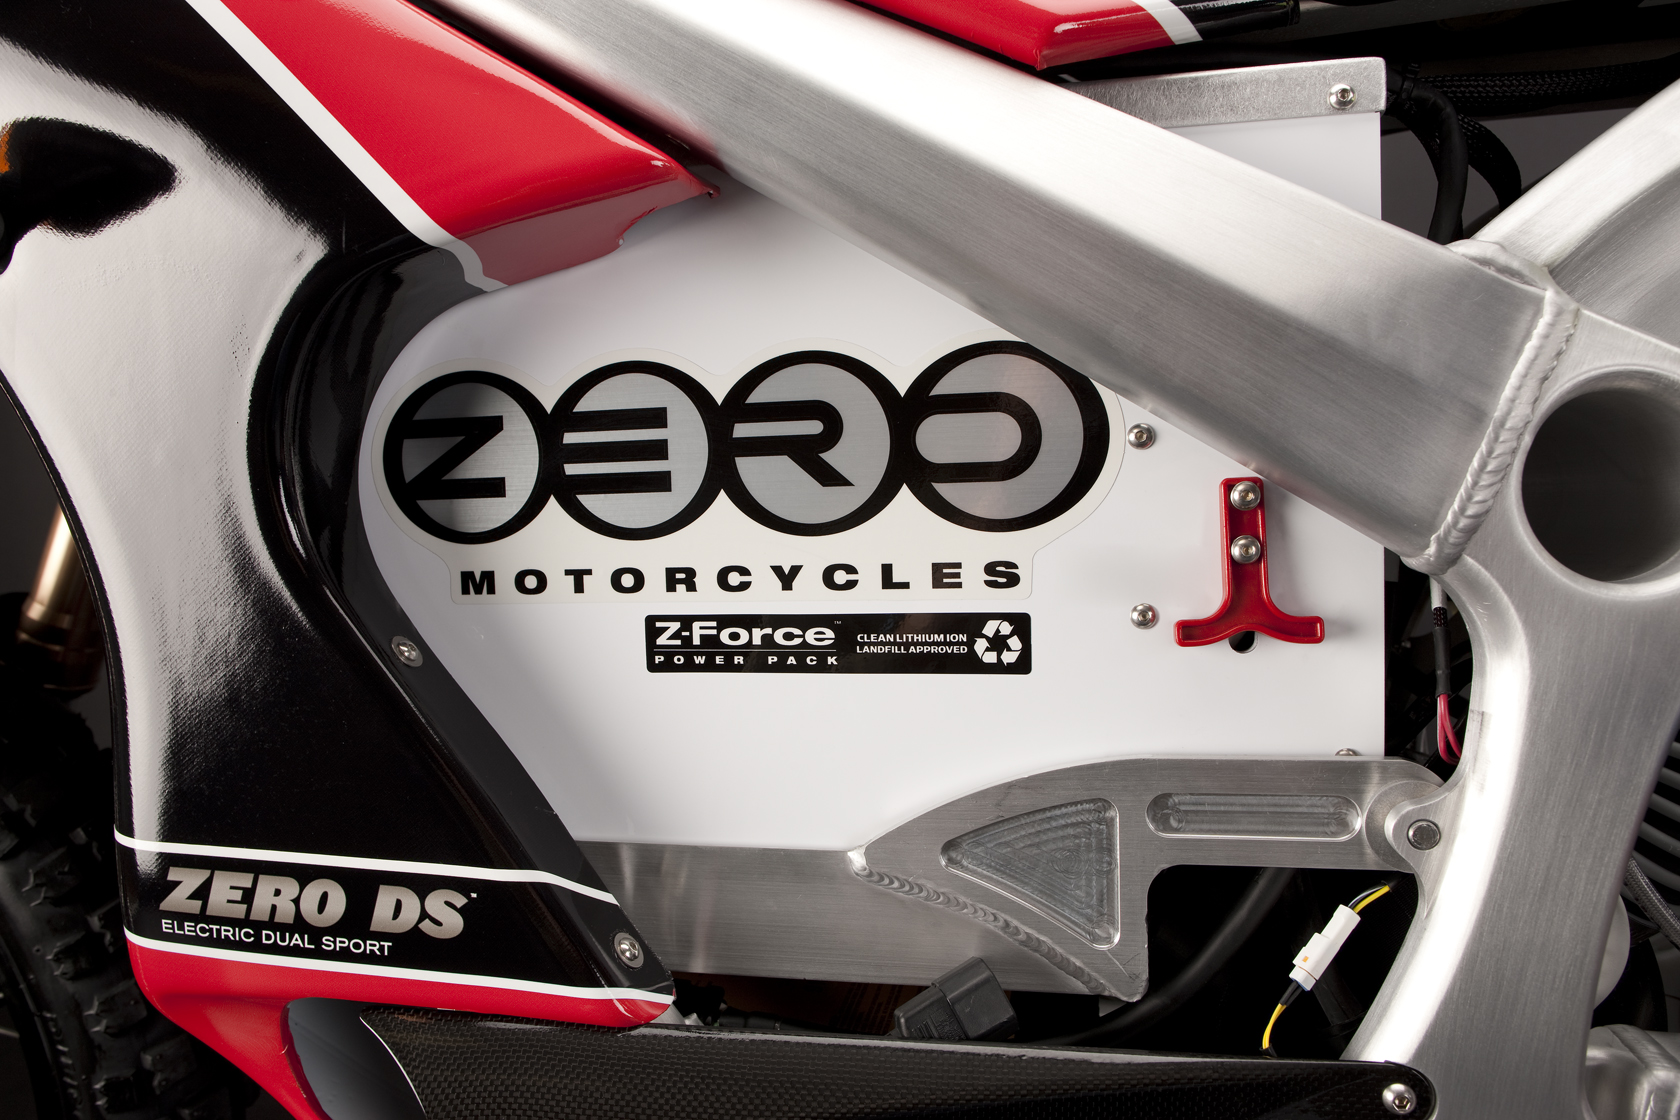 2010 Zero DS Electric Motorcycle: Battery